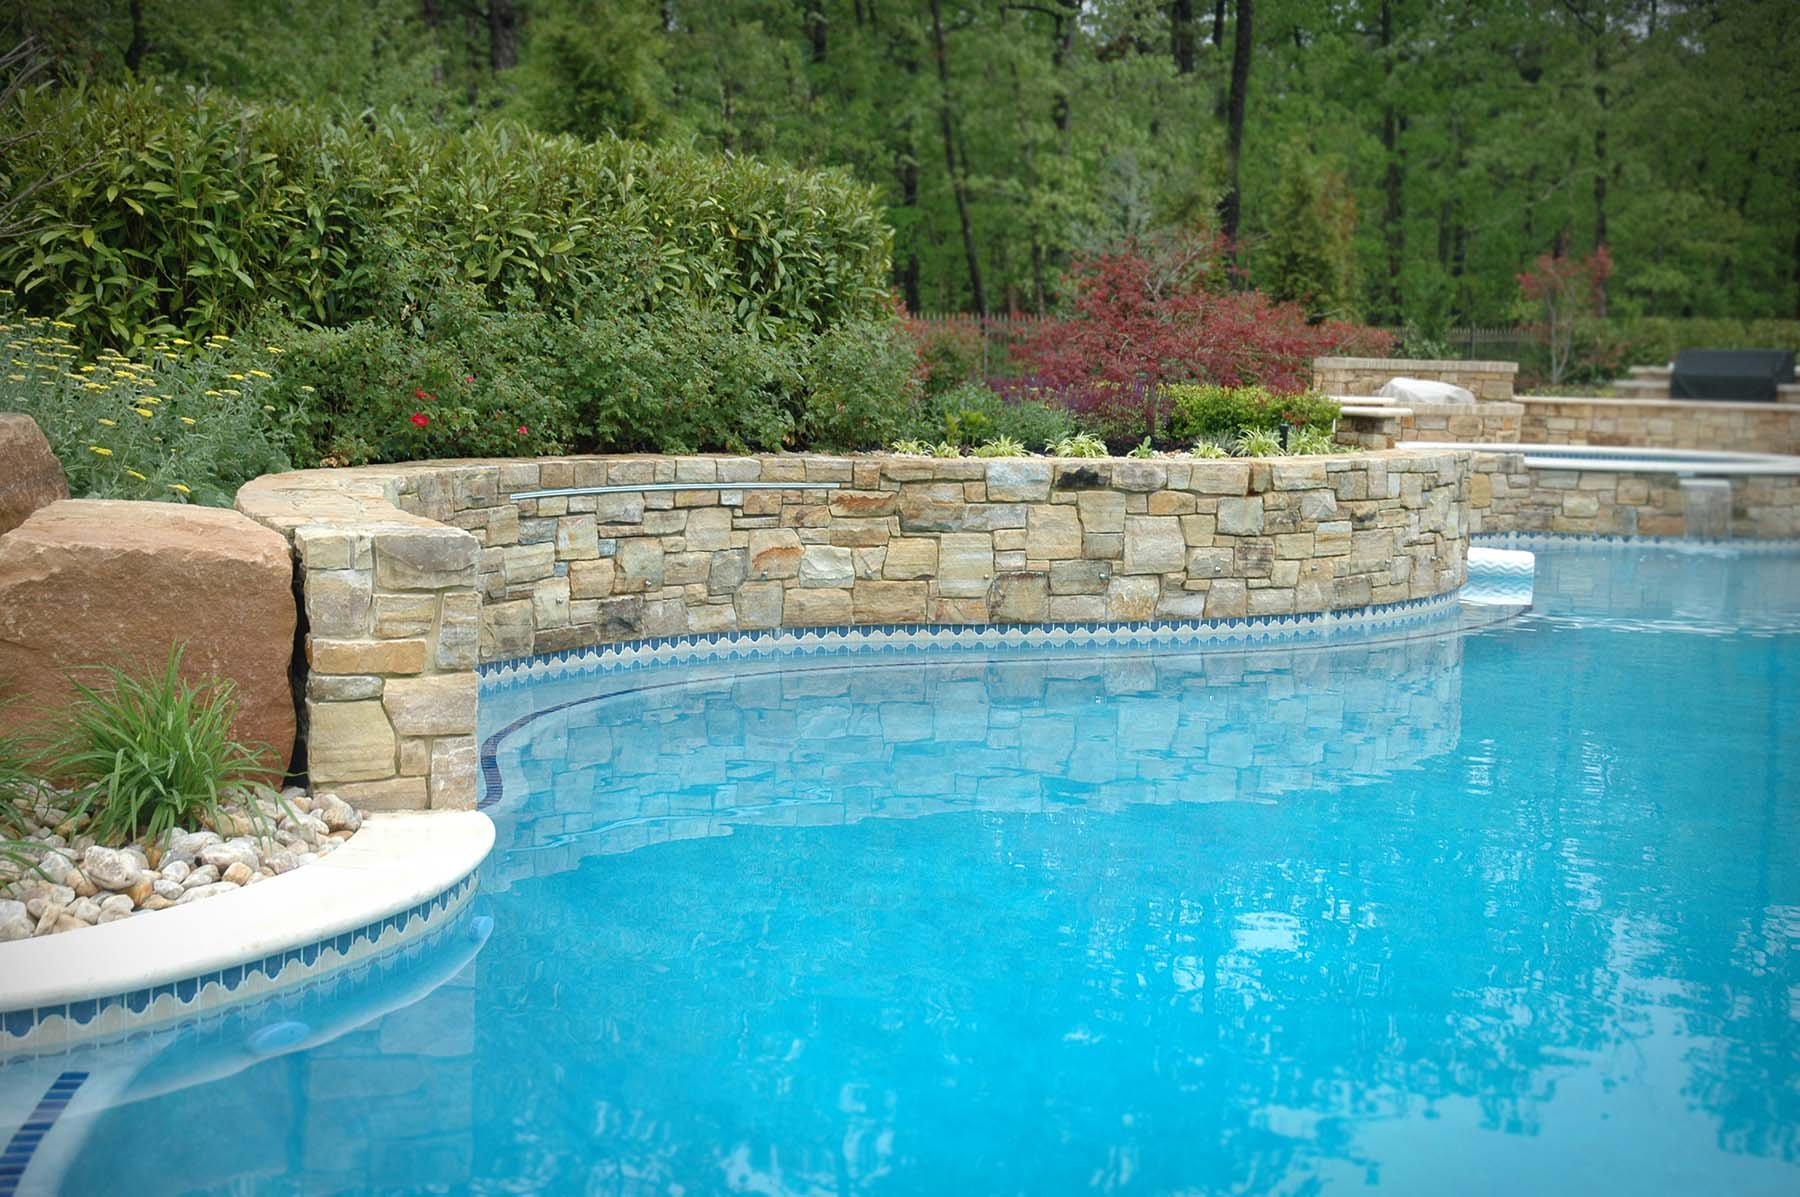 Pool with South Bay Quartzite natural building stone exterior retaining wall